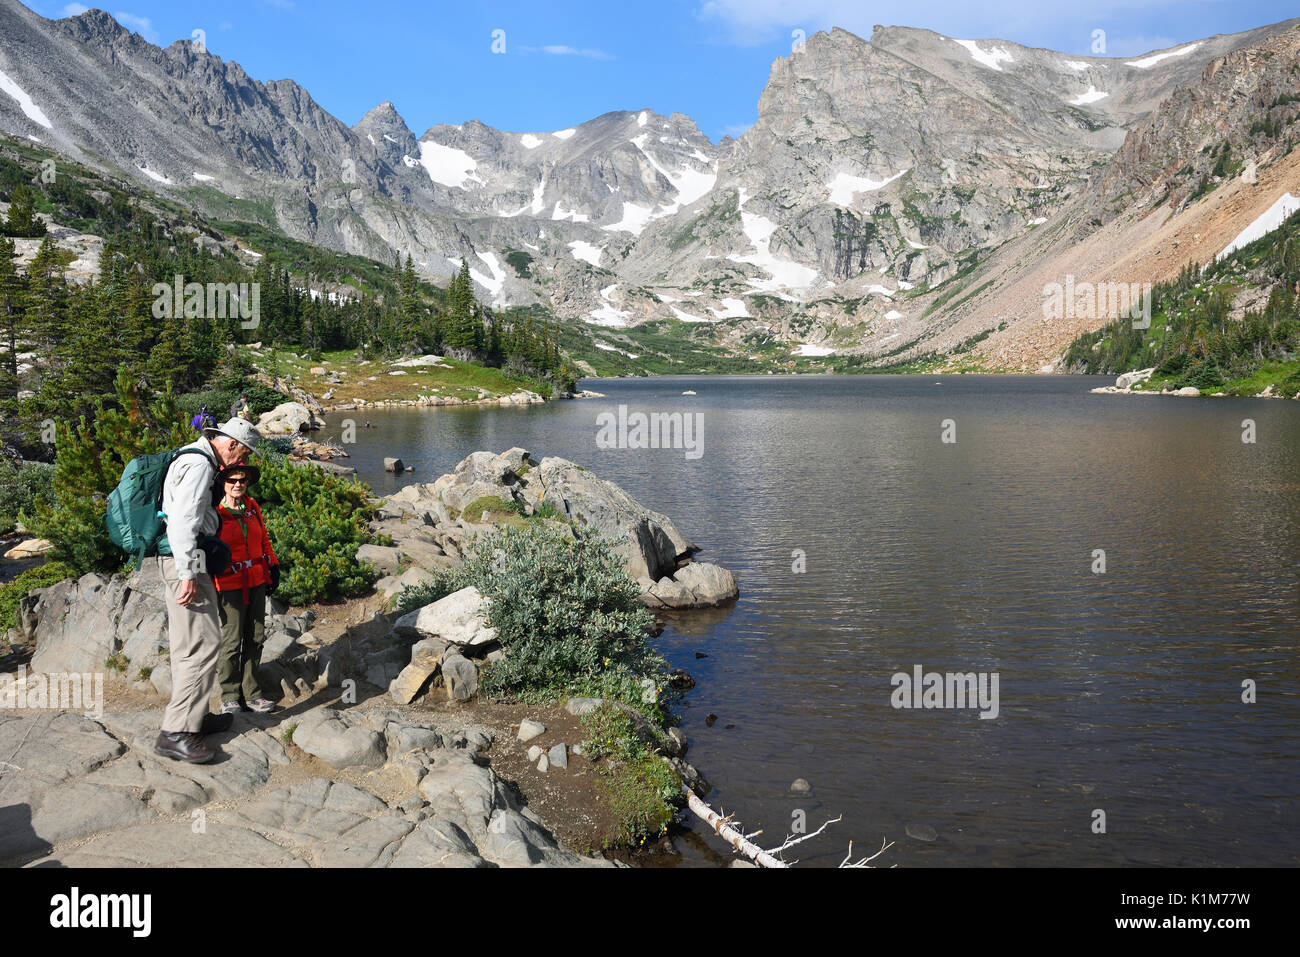 Isabelle Stock Photos Isabelle Stock Images Alamy # Un Muble De Tele En Lake